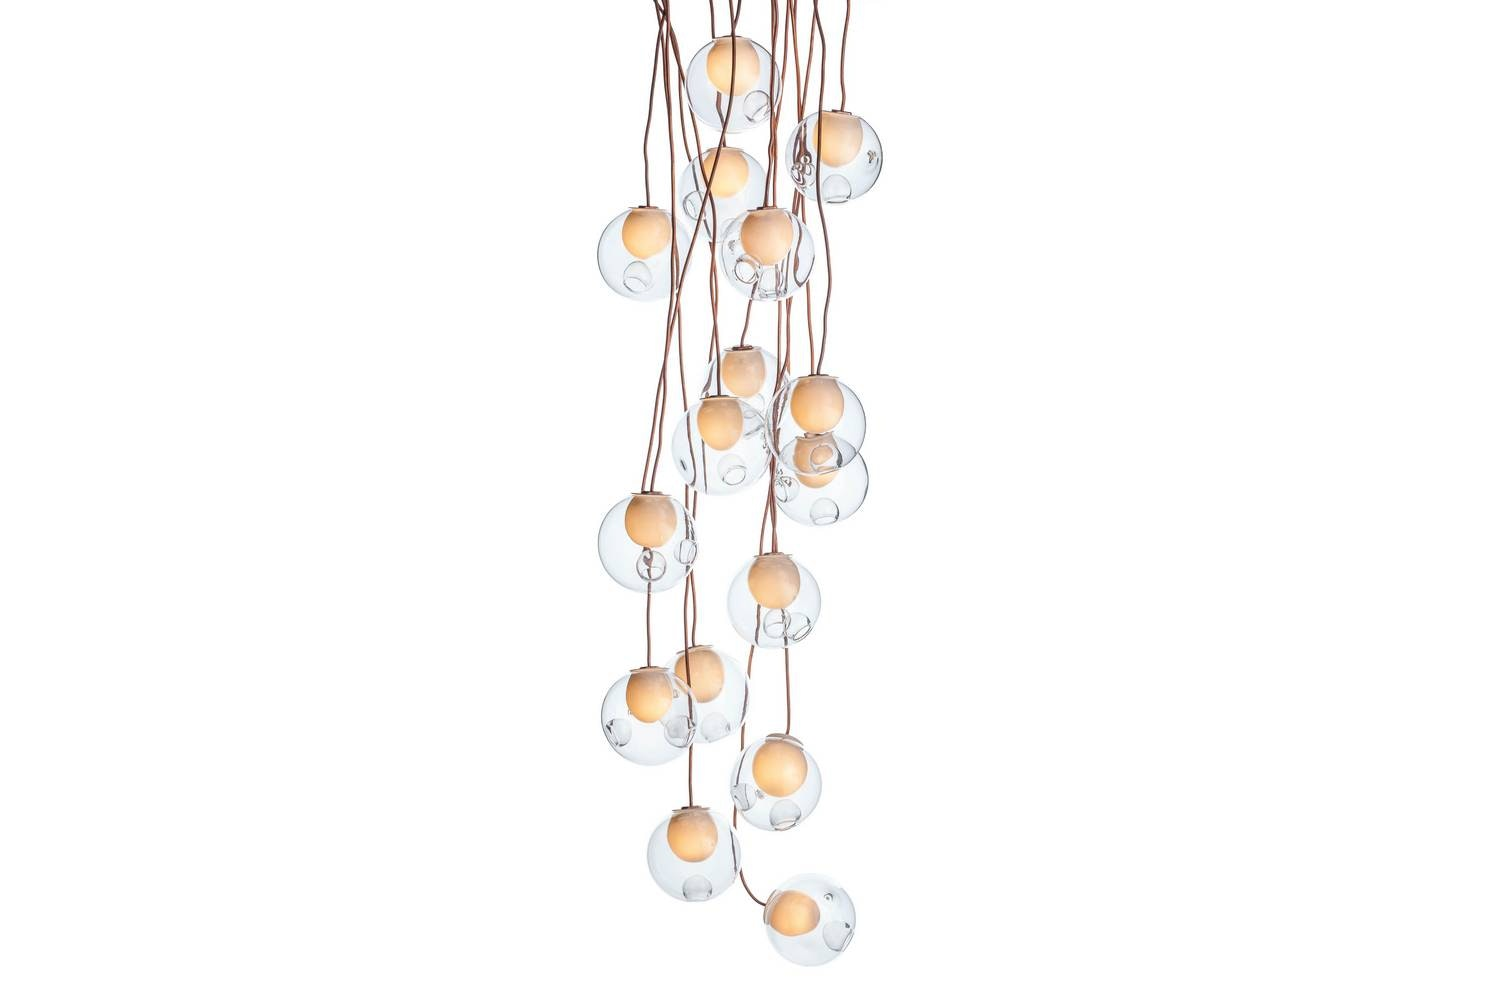 28.16 Copper Suspension Lamp by Omer Arbel for Bocci